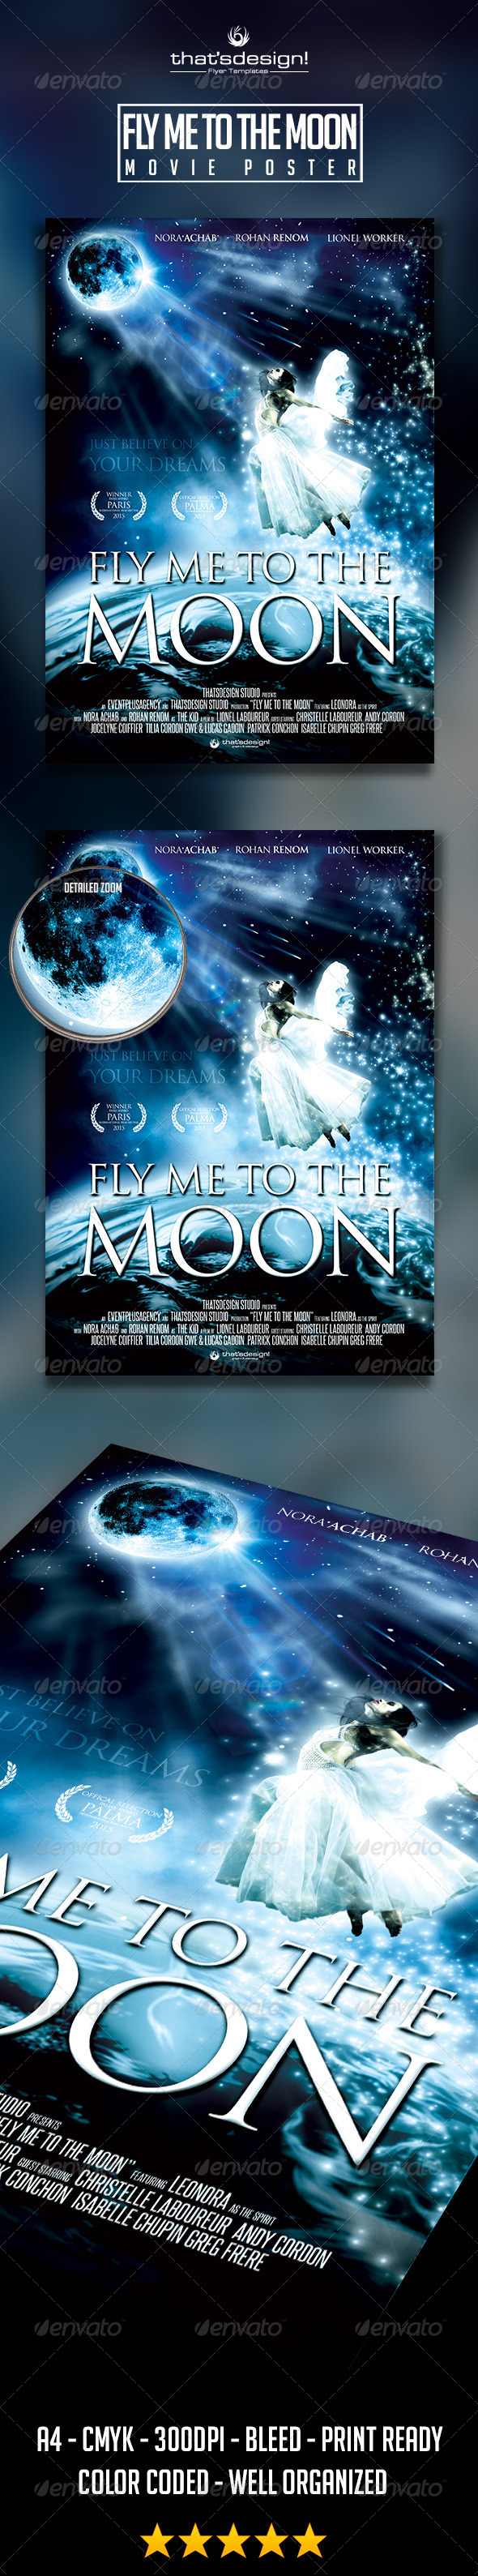 GraphicRiver Fly Me to the Moon Movie Poster Template 8752128